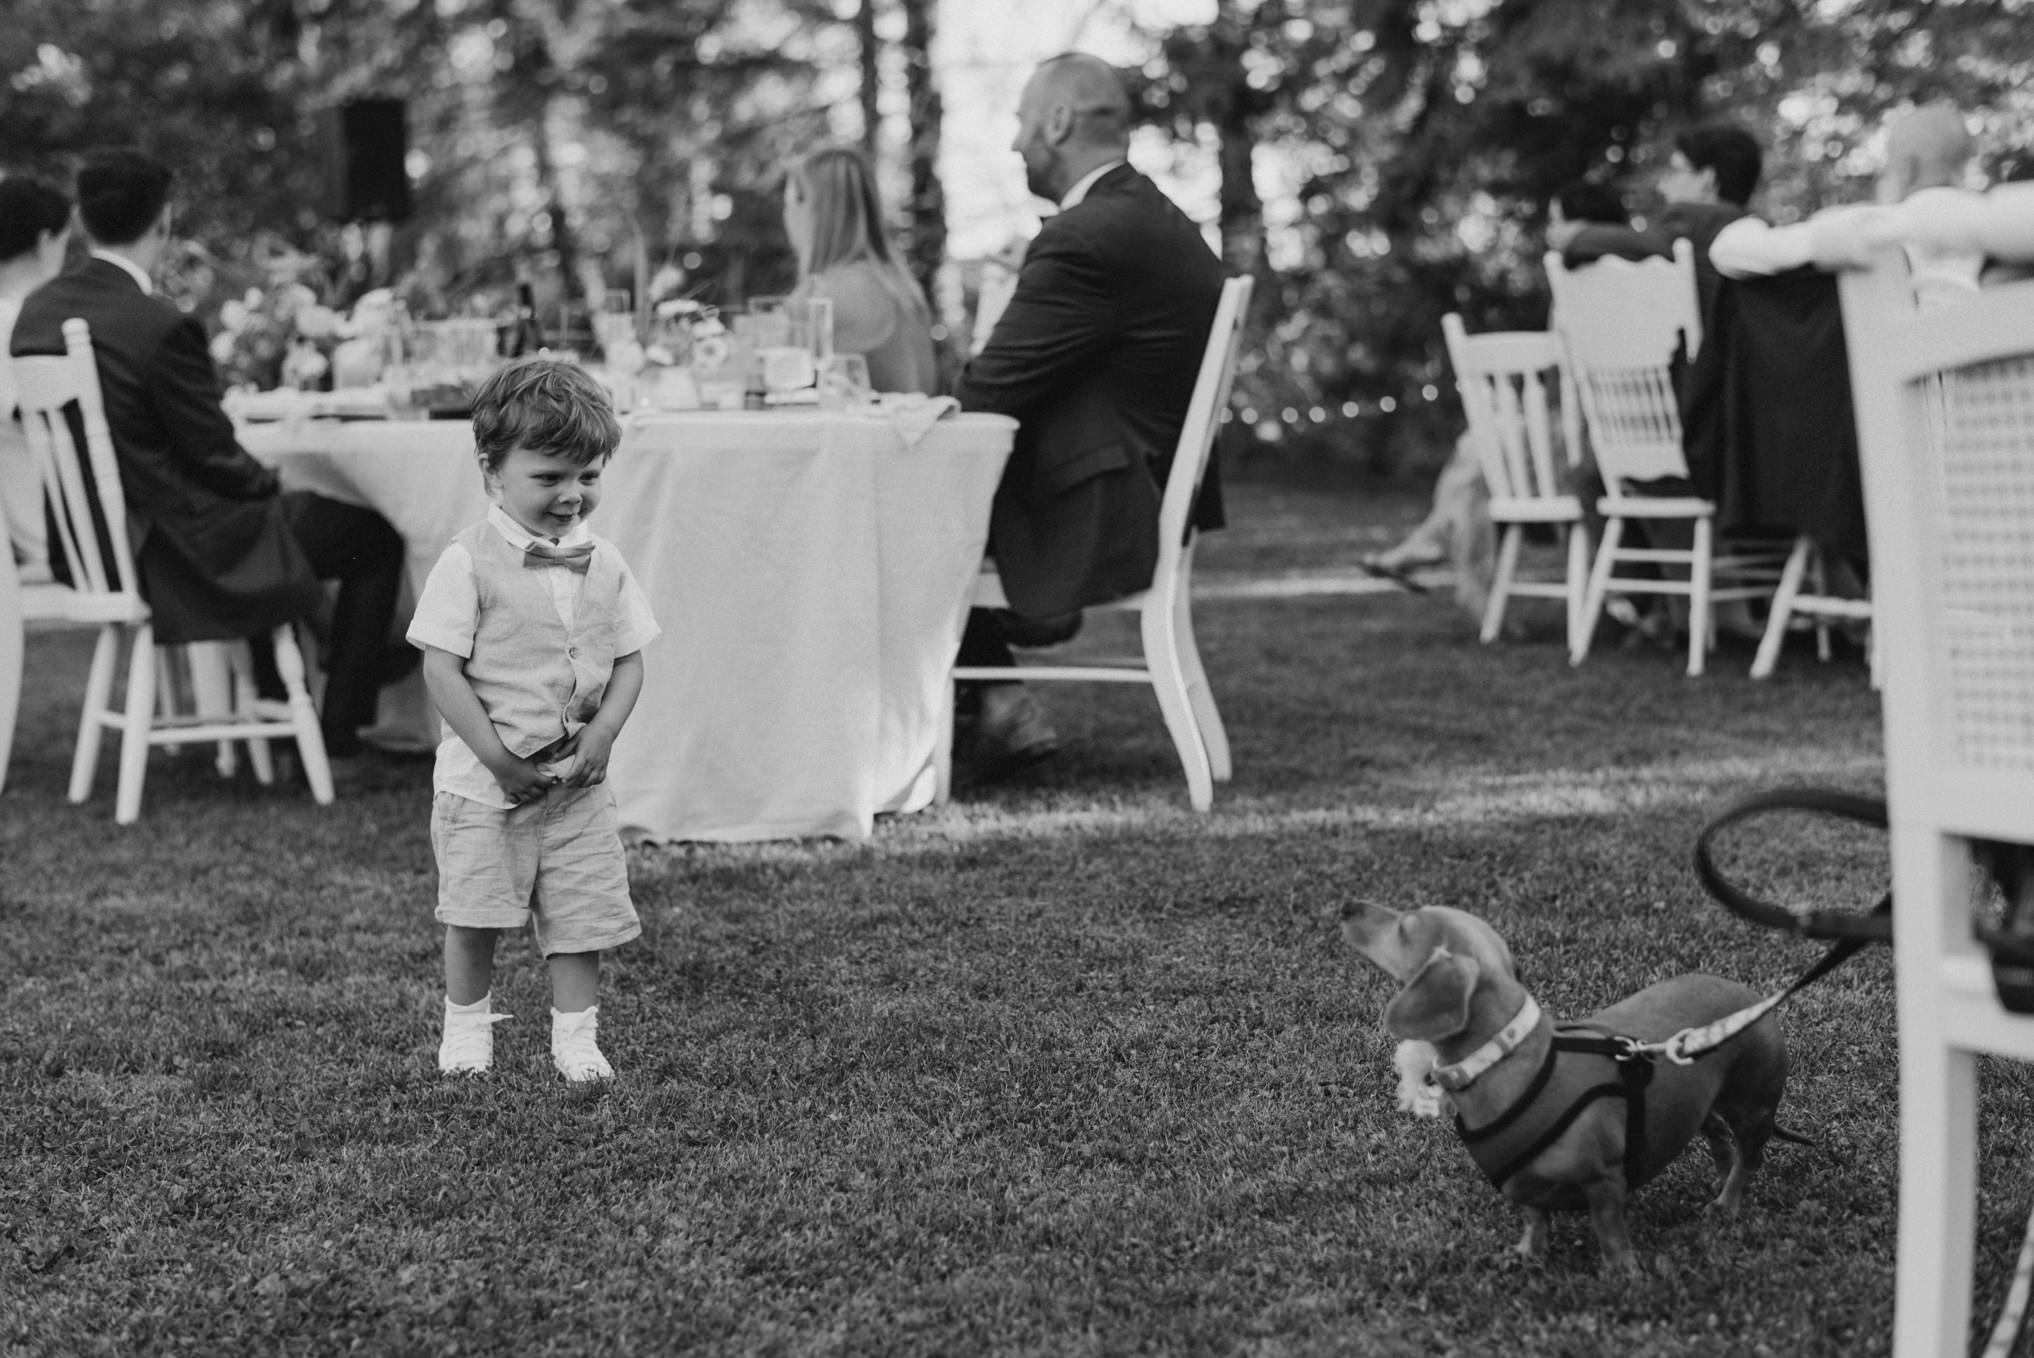 little boy playing with dog at outdoor wedding reception